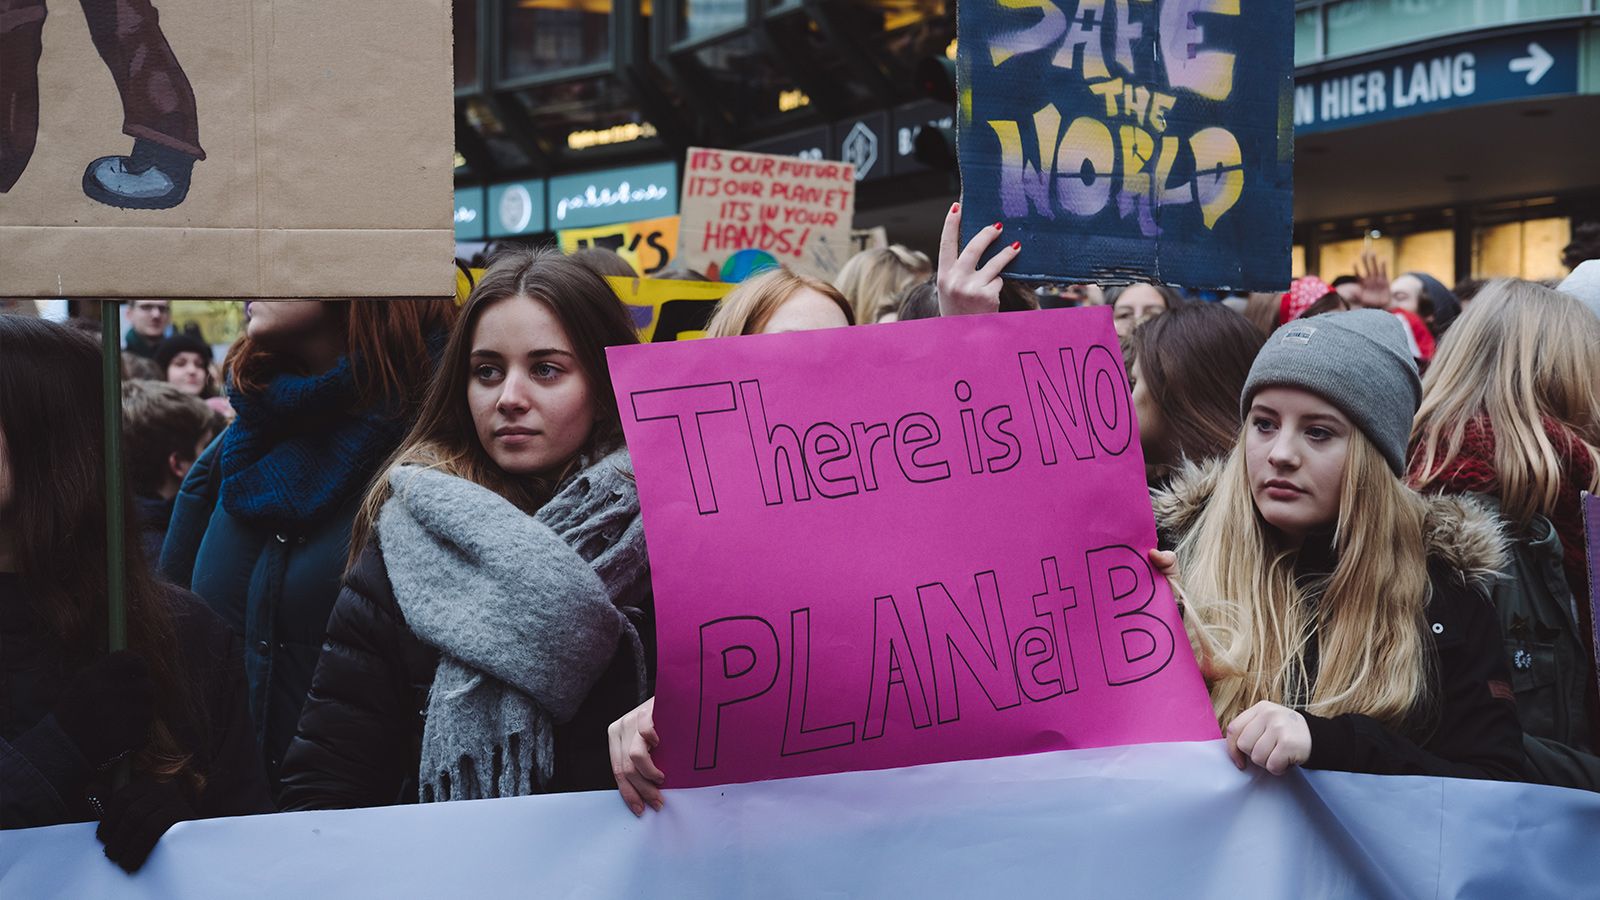 ecosia-joins-climate-strike-march-fridays-for-the-future-greta-thunberg-4